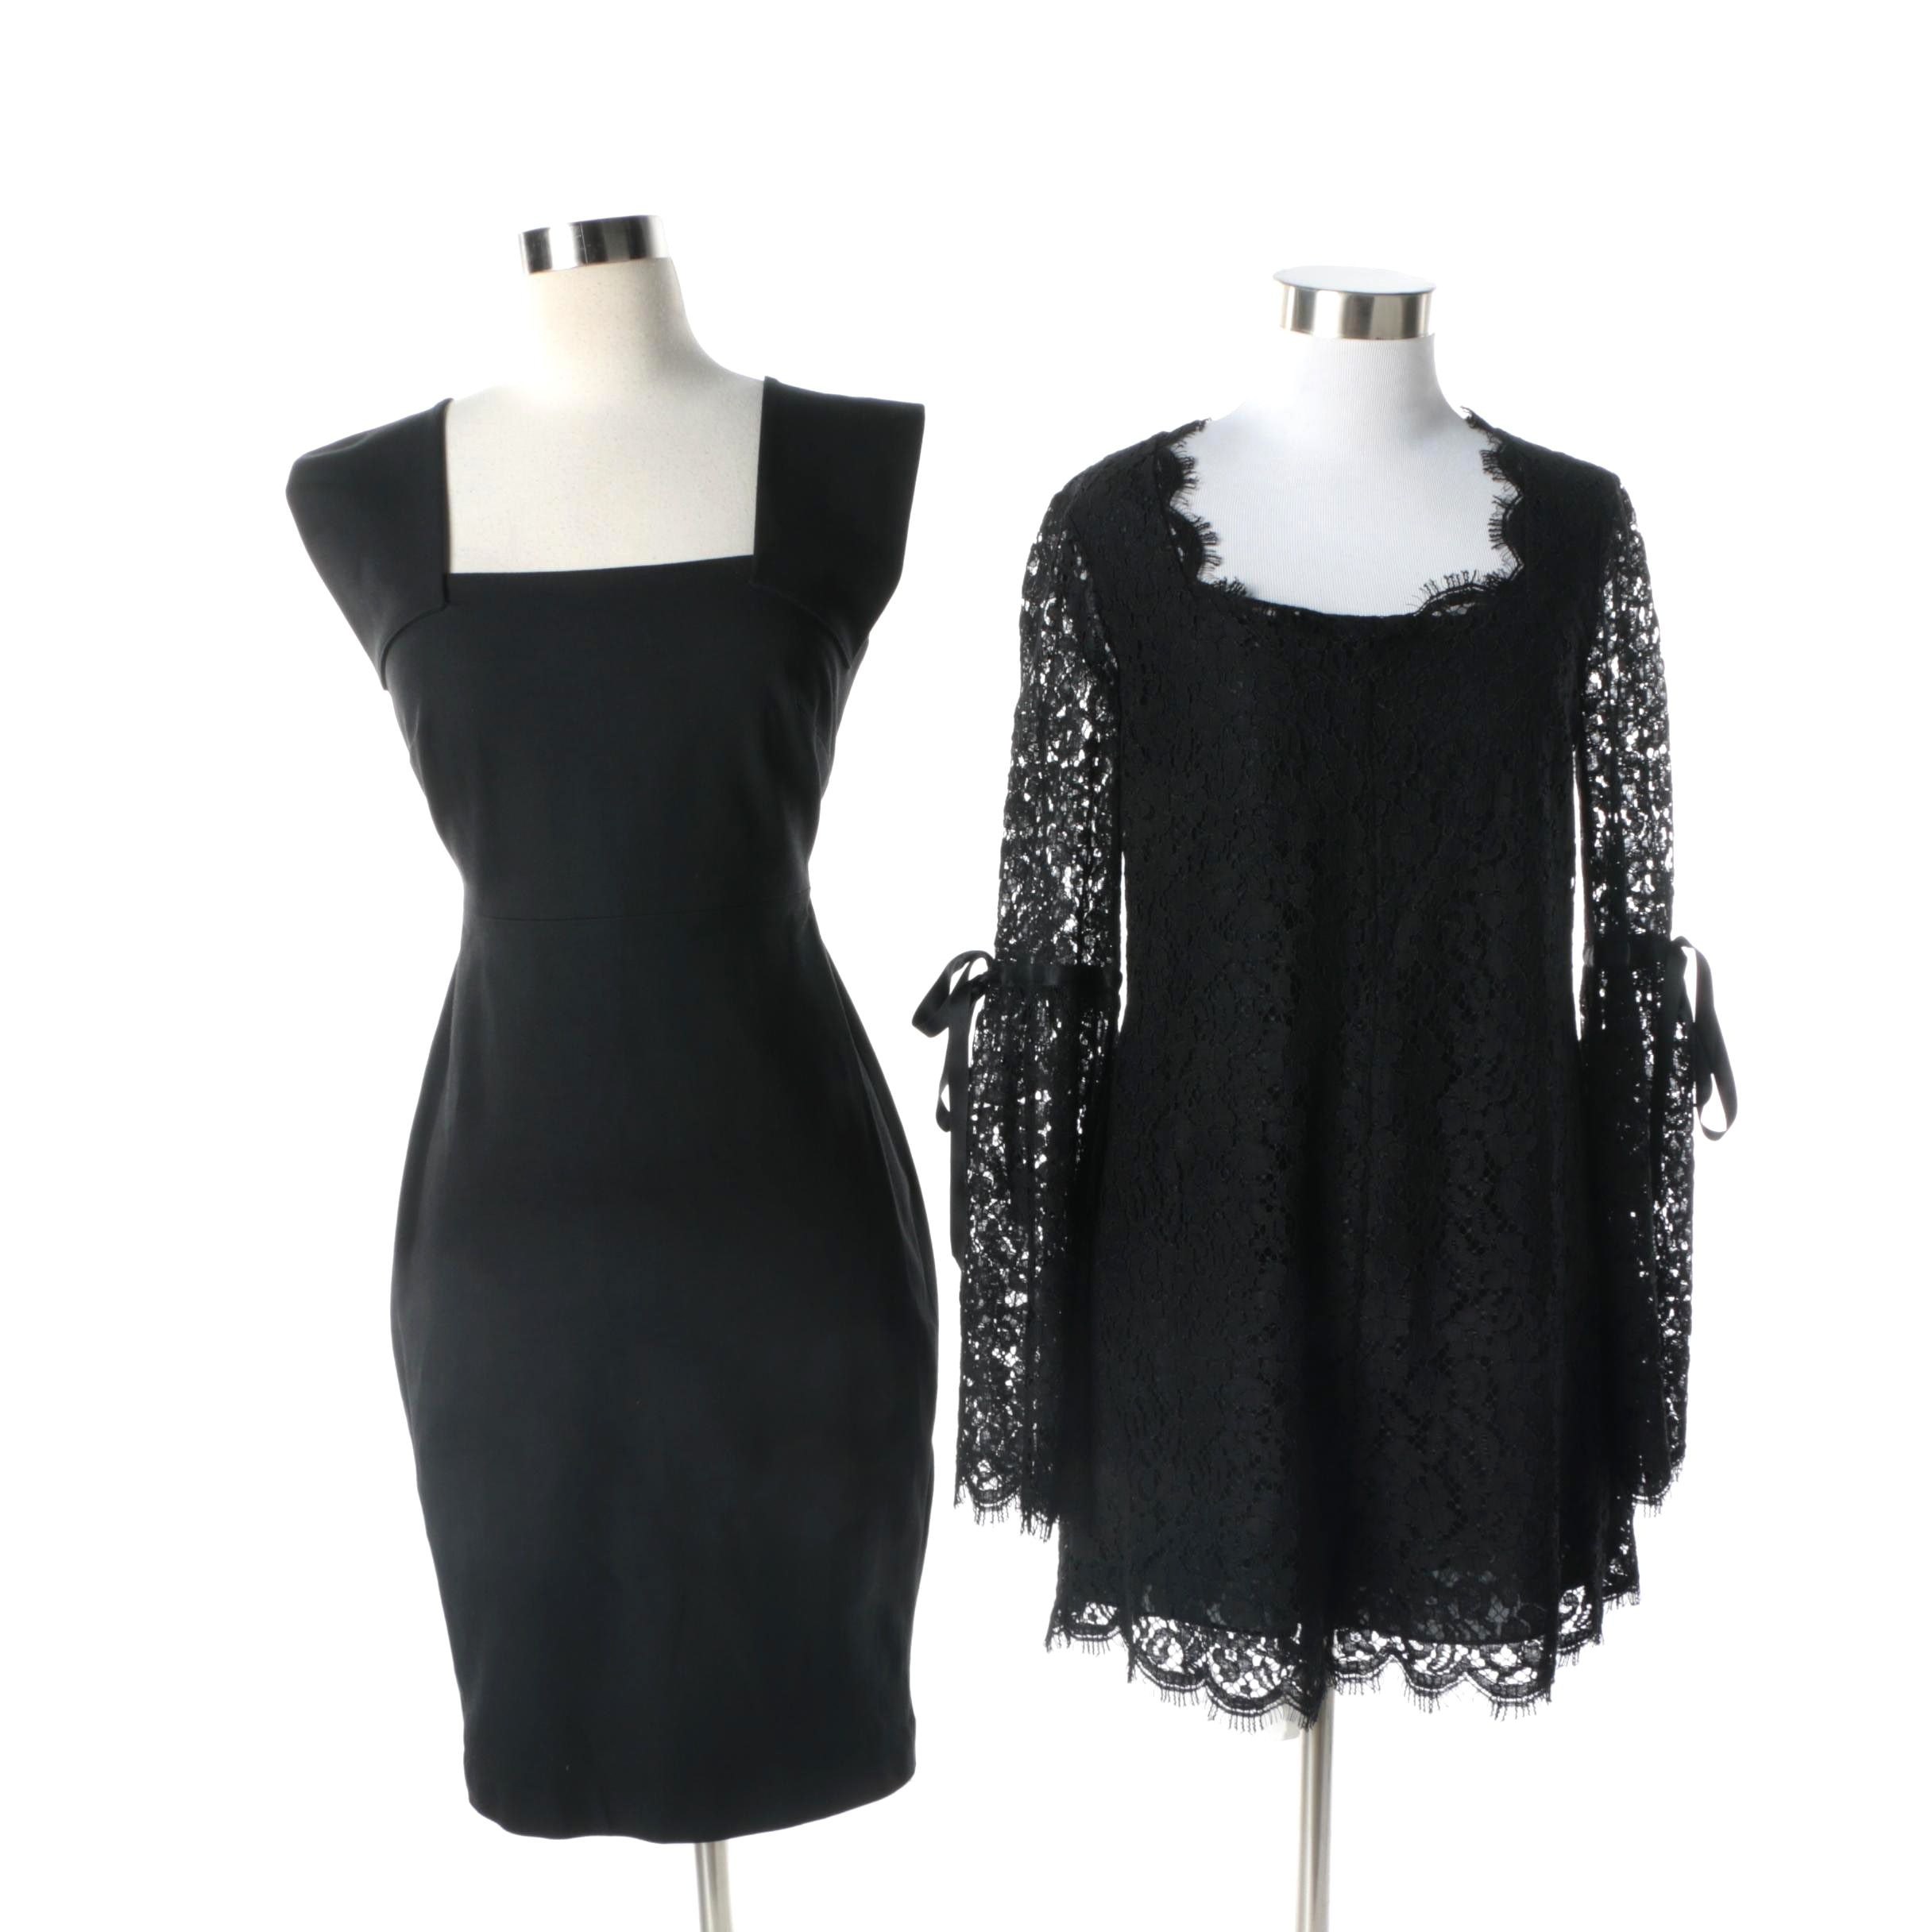 Rachel Zoe Black Lace Romper and Roland Mouret for Banana Republic Black Dress